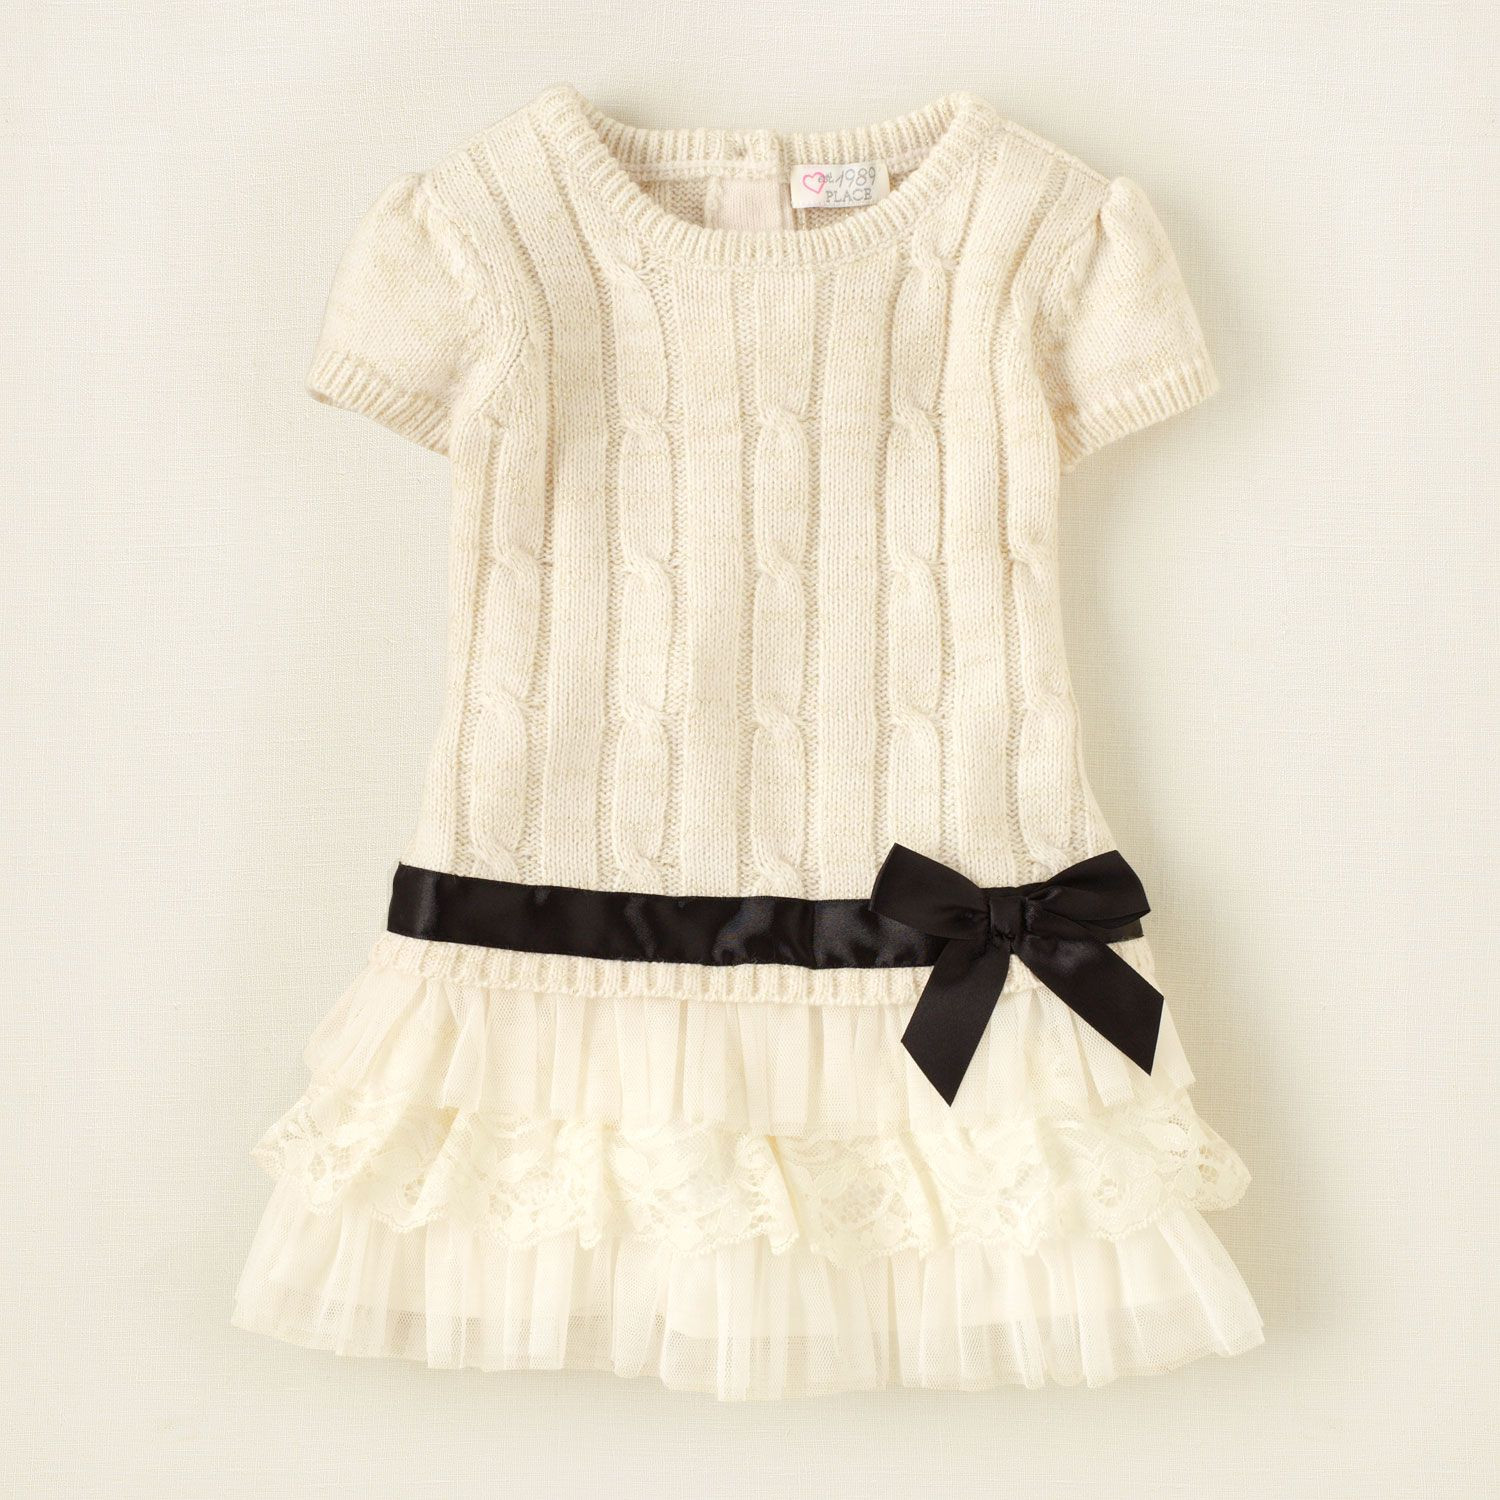 Luxury Baby Girls On Pinterest Baby Girl Knitted Dress Of Incredible 47 Photos Baby Girl Knitted Dress